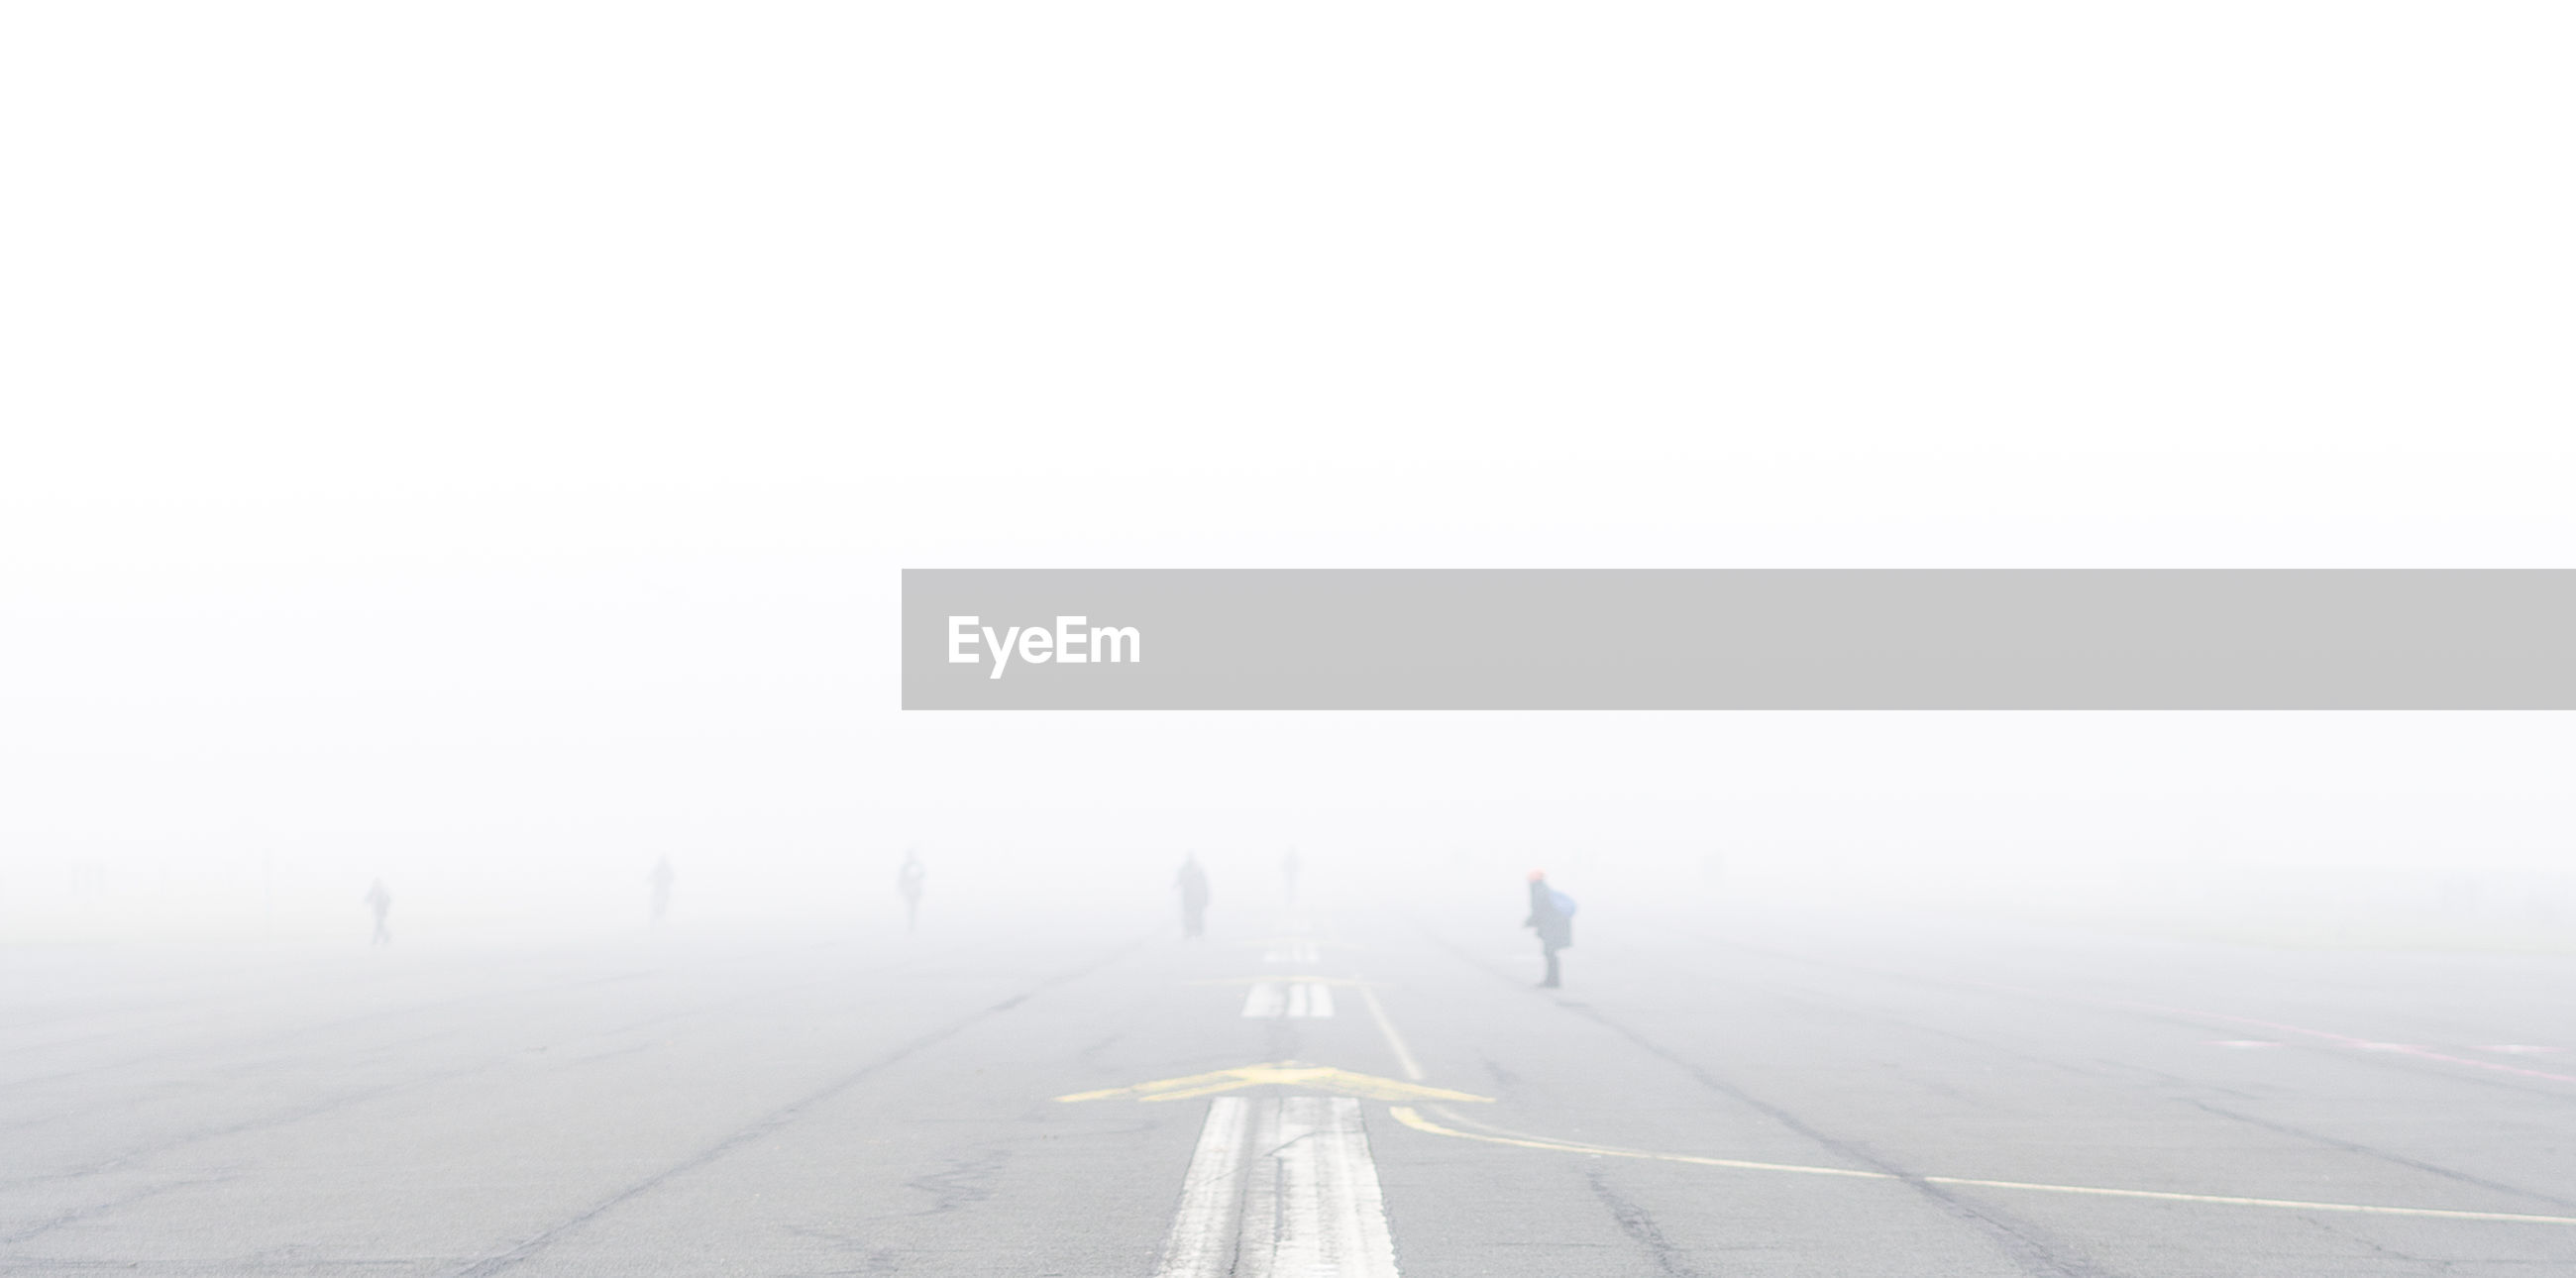 PEOPLE WALKING ON ROAD IN FOGGY WEATHER